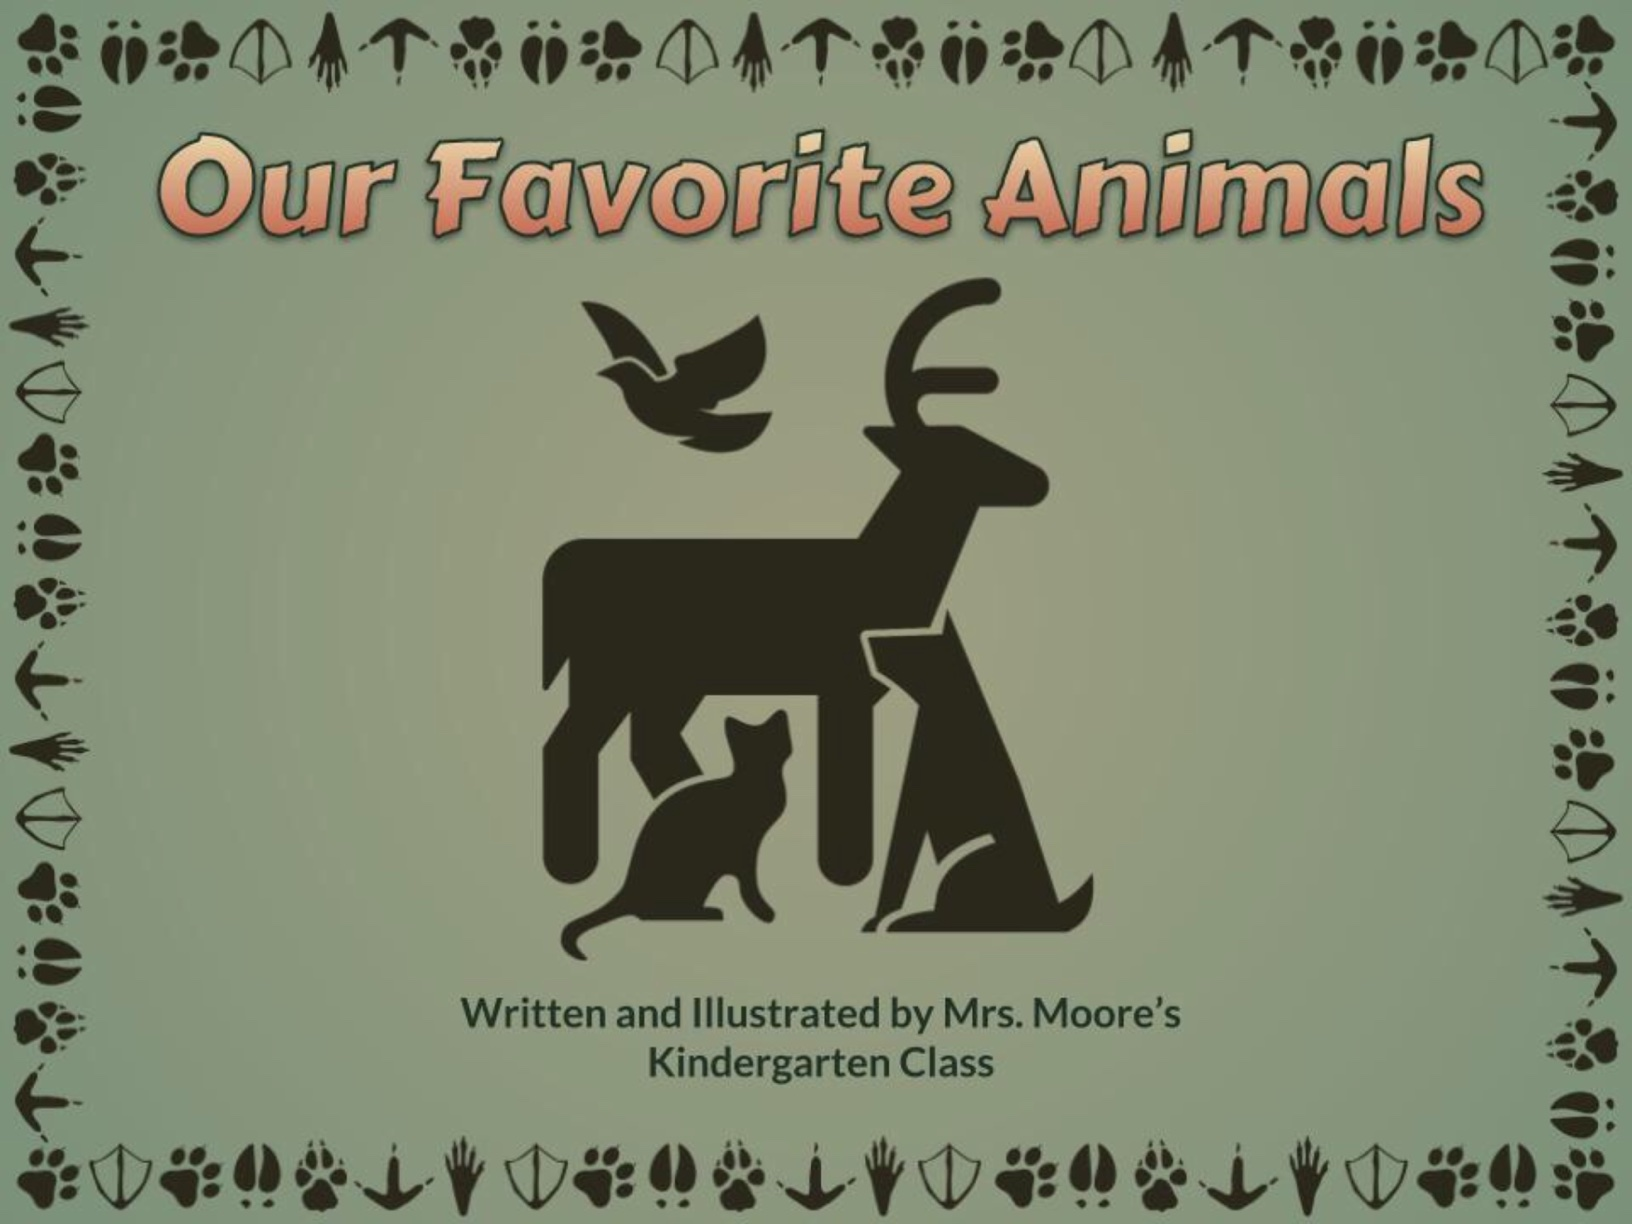 Mrs. Moore's Class: Animals